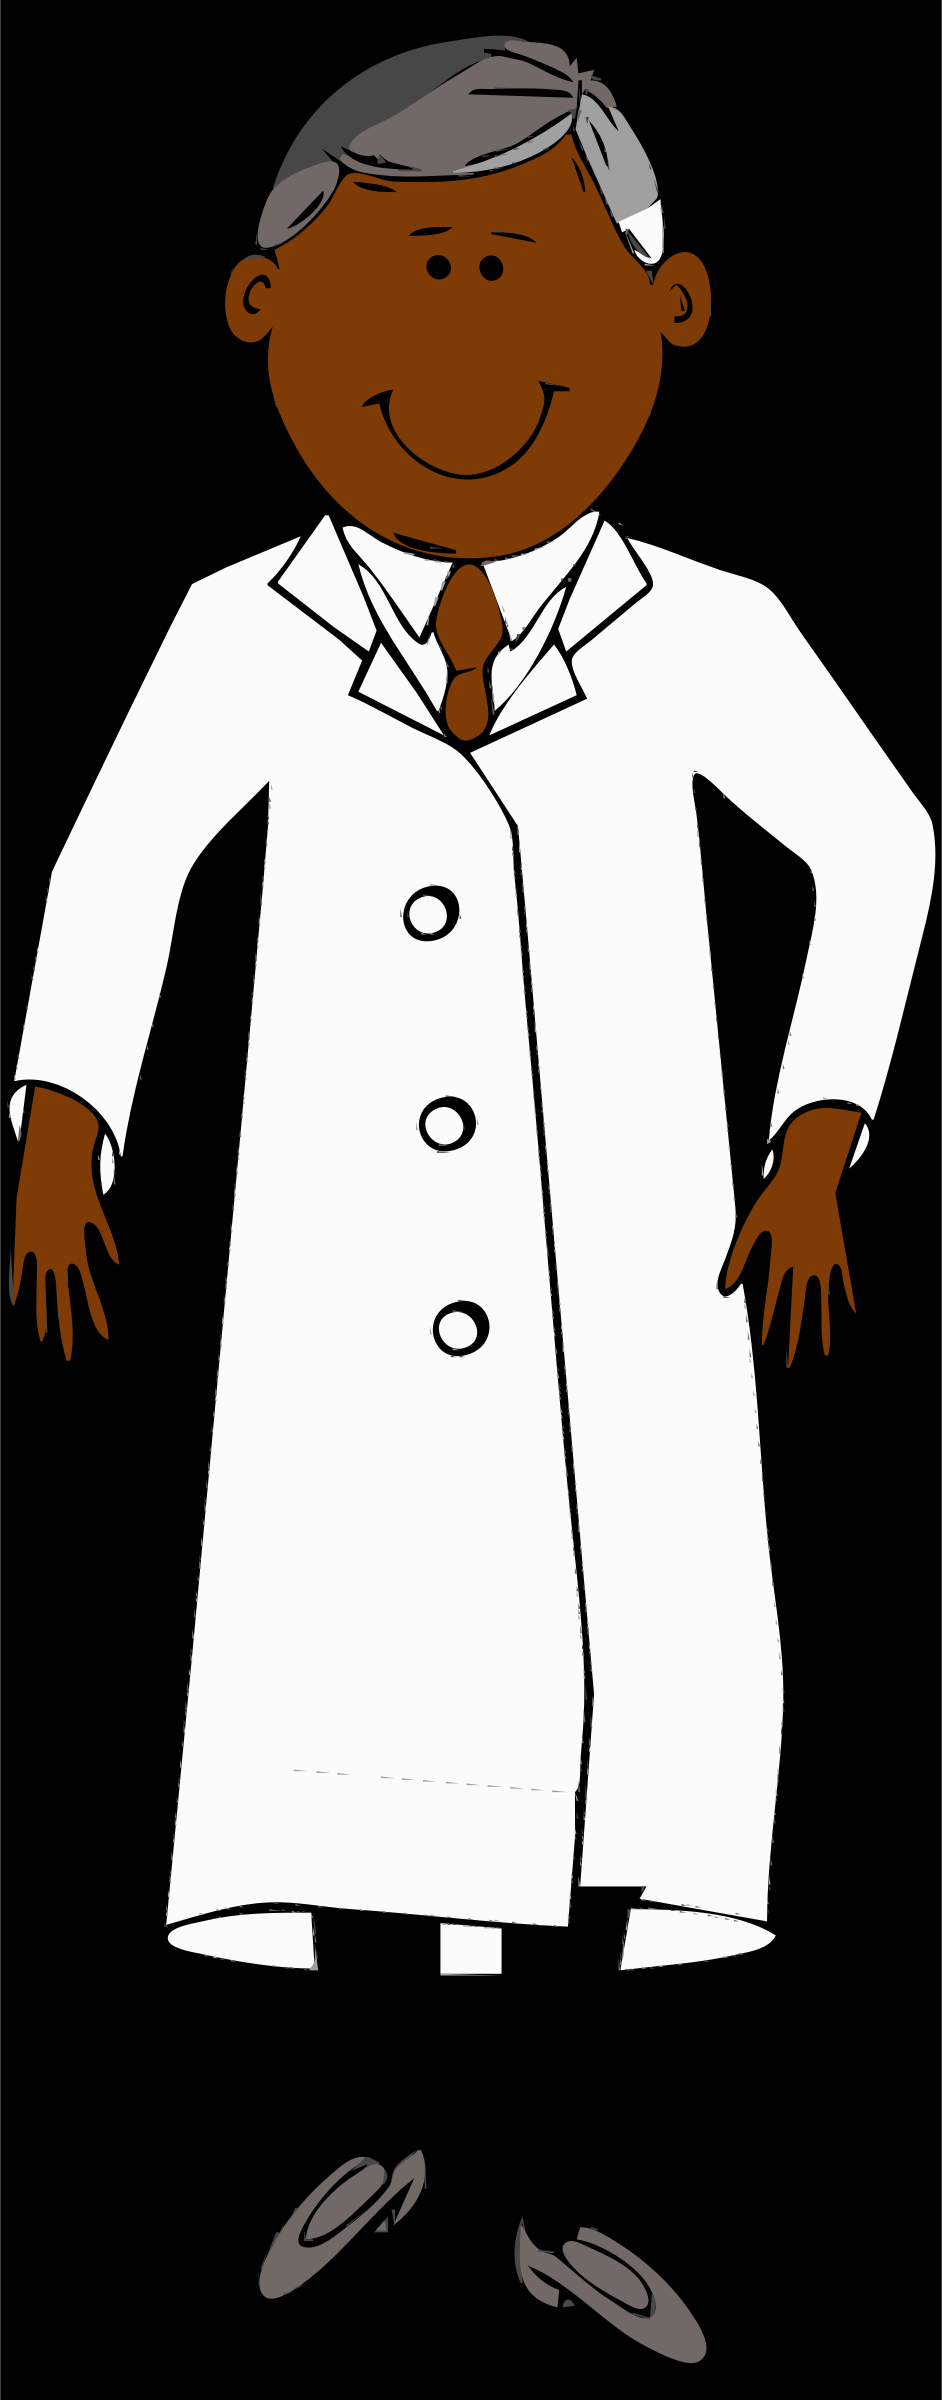 lab coat worn by scientist with grey hair by barnheartowl